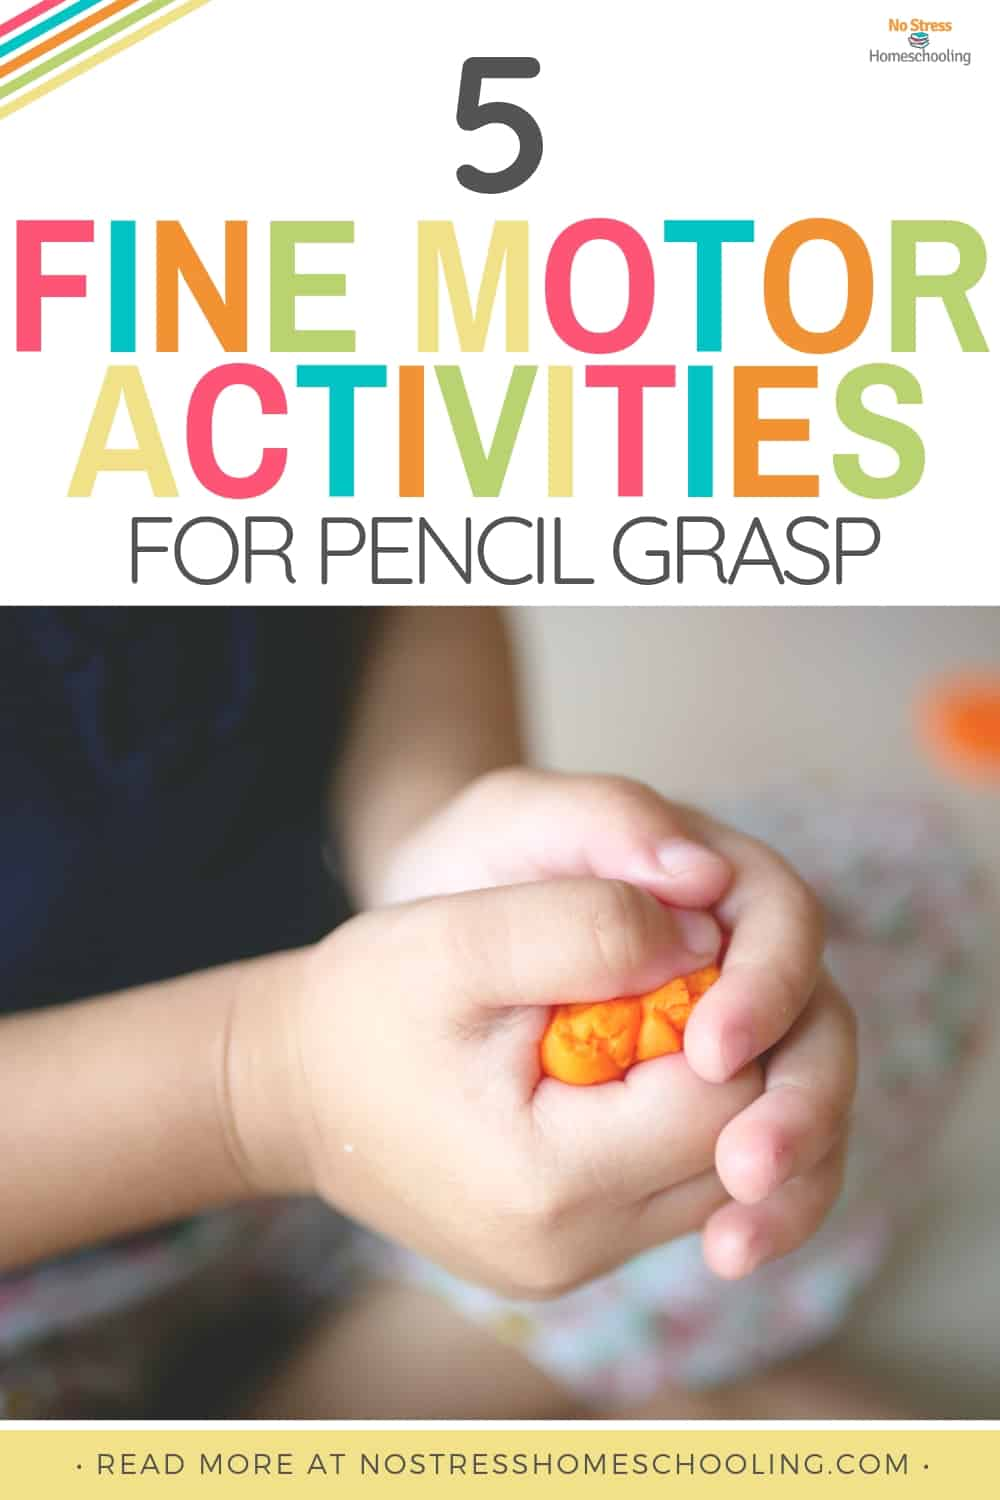 Looking for a few pencil grasp writing activities for your kids? These 5 fine motor activities are sure to help them develop proper pencil grasp.